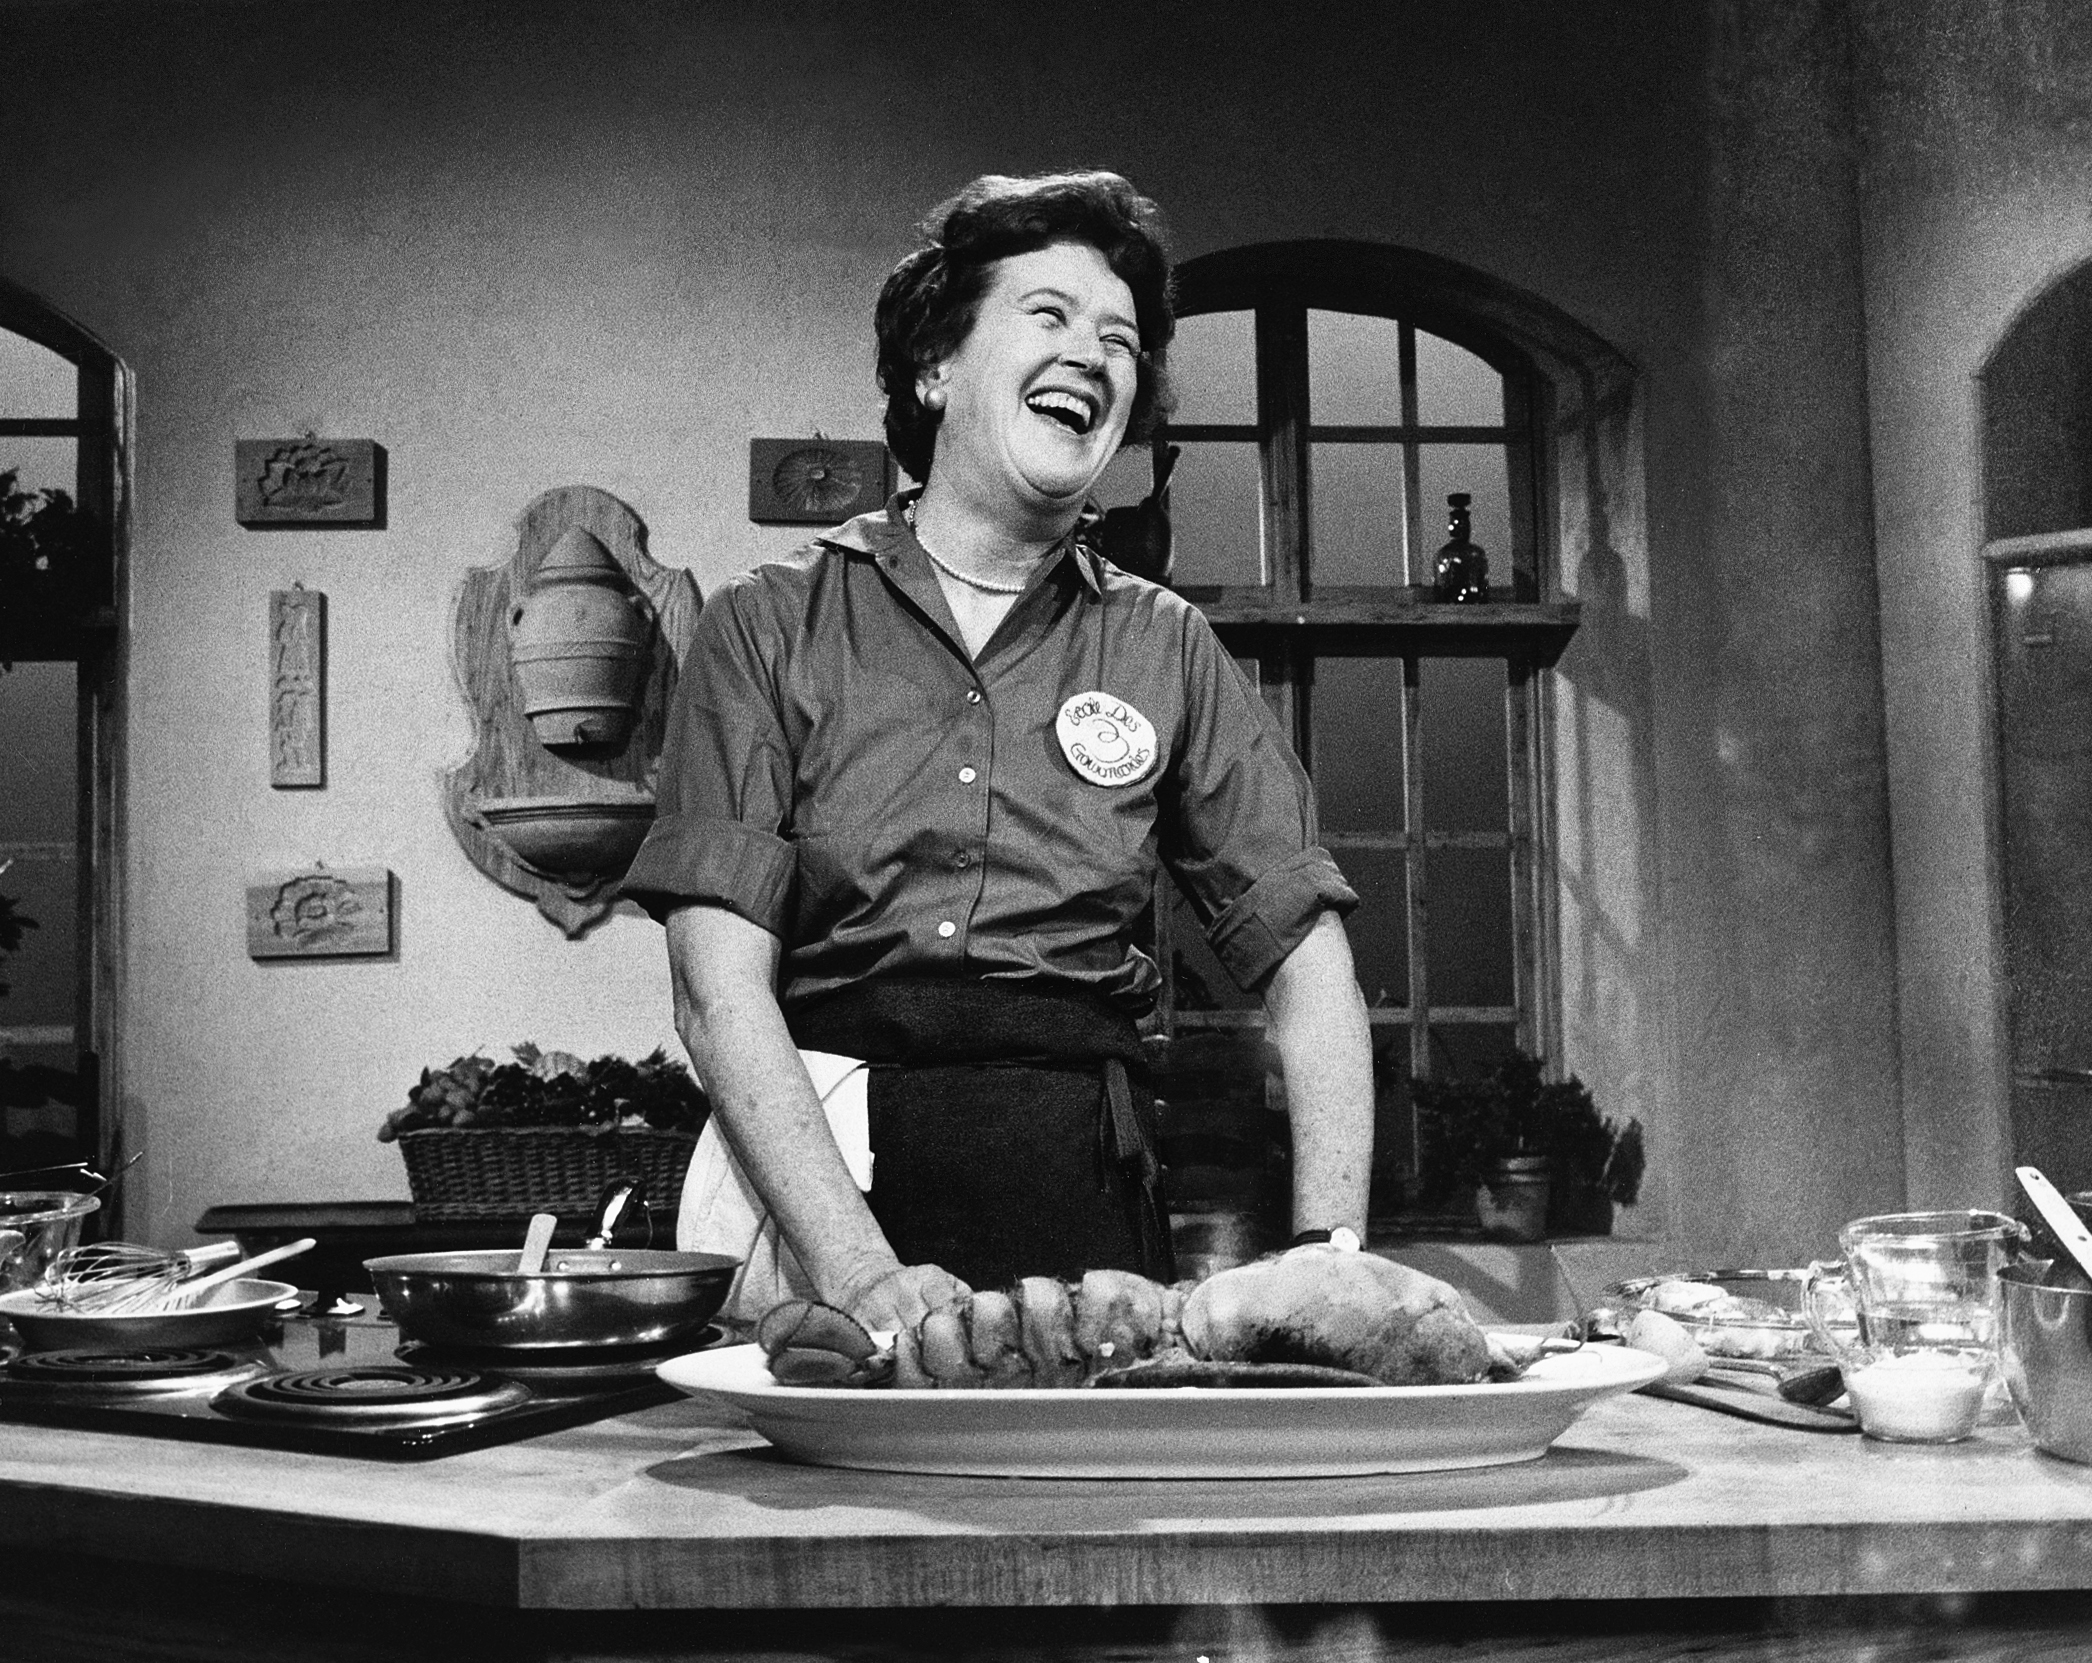 say happy birthday to julia child win a new cookbook collection brooklyn based. Black Bedroom Furniture Sets. Home Design Ideas